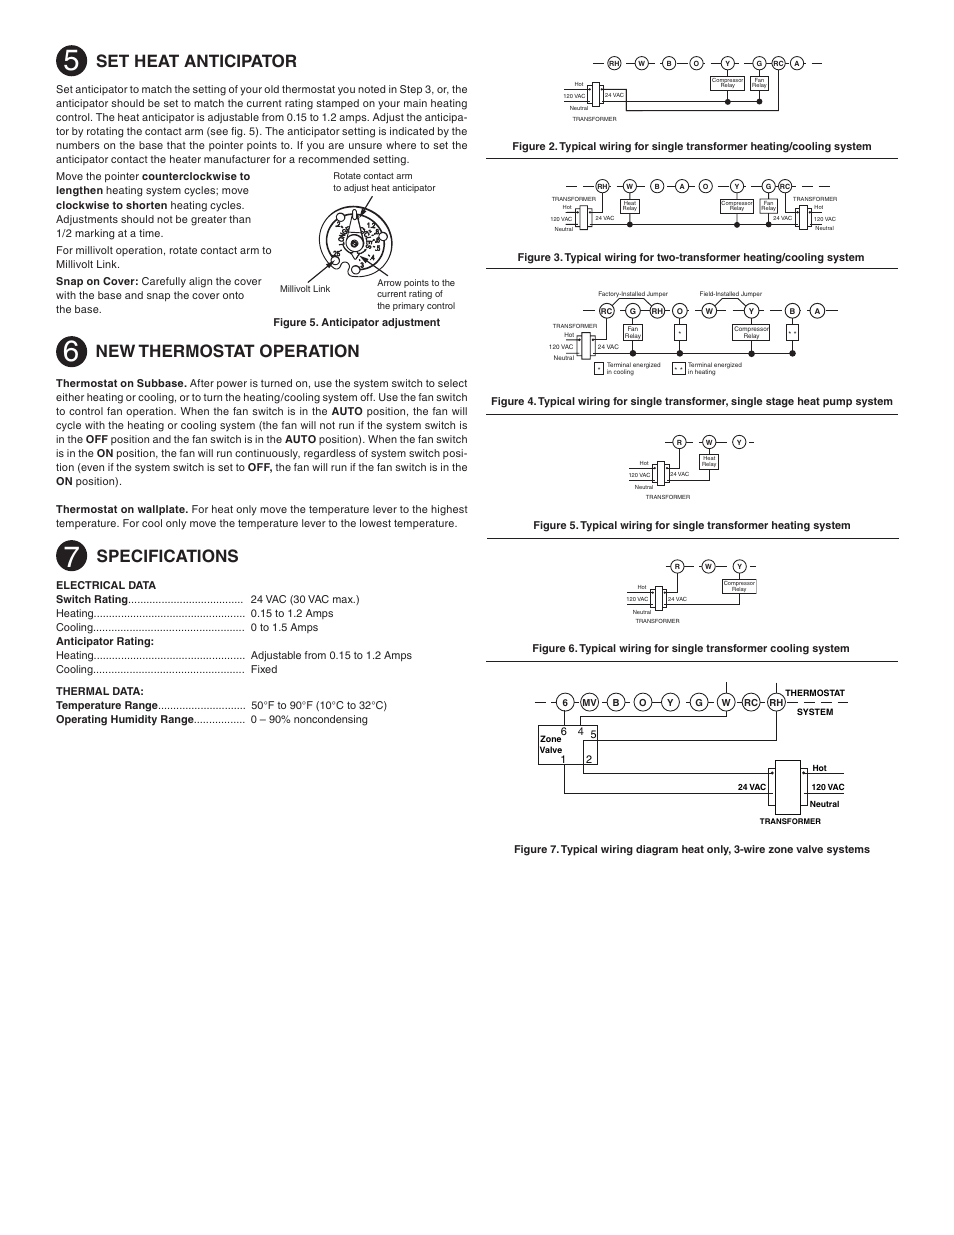 white rodgers 1e56n 444 page2 set heat anticipator, new thermostat operation, specifications 1f56n-444 wiring diagram at eliteediting.co